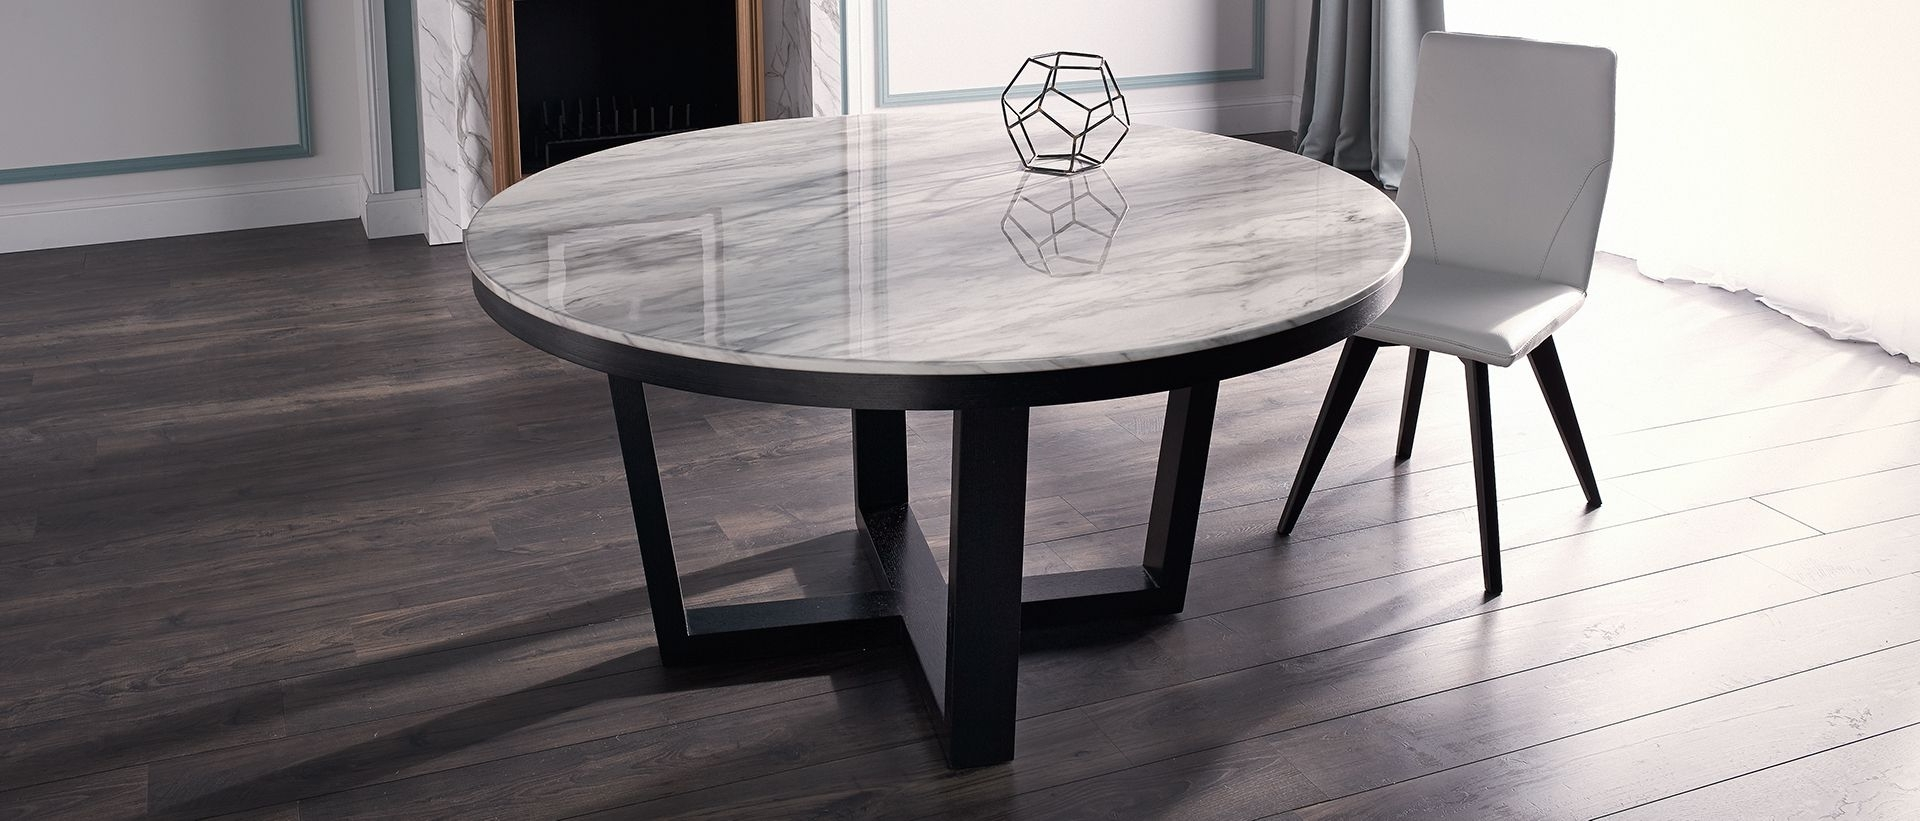 Most Recent Circle Dining Tables Throughout Nick Scali (View 21 of 25)